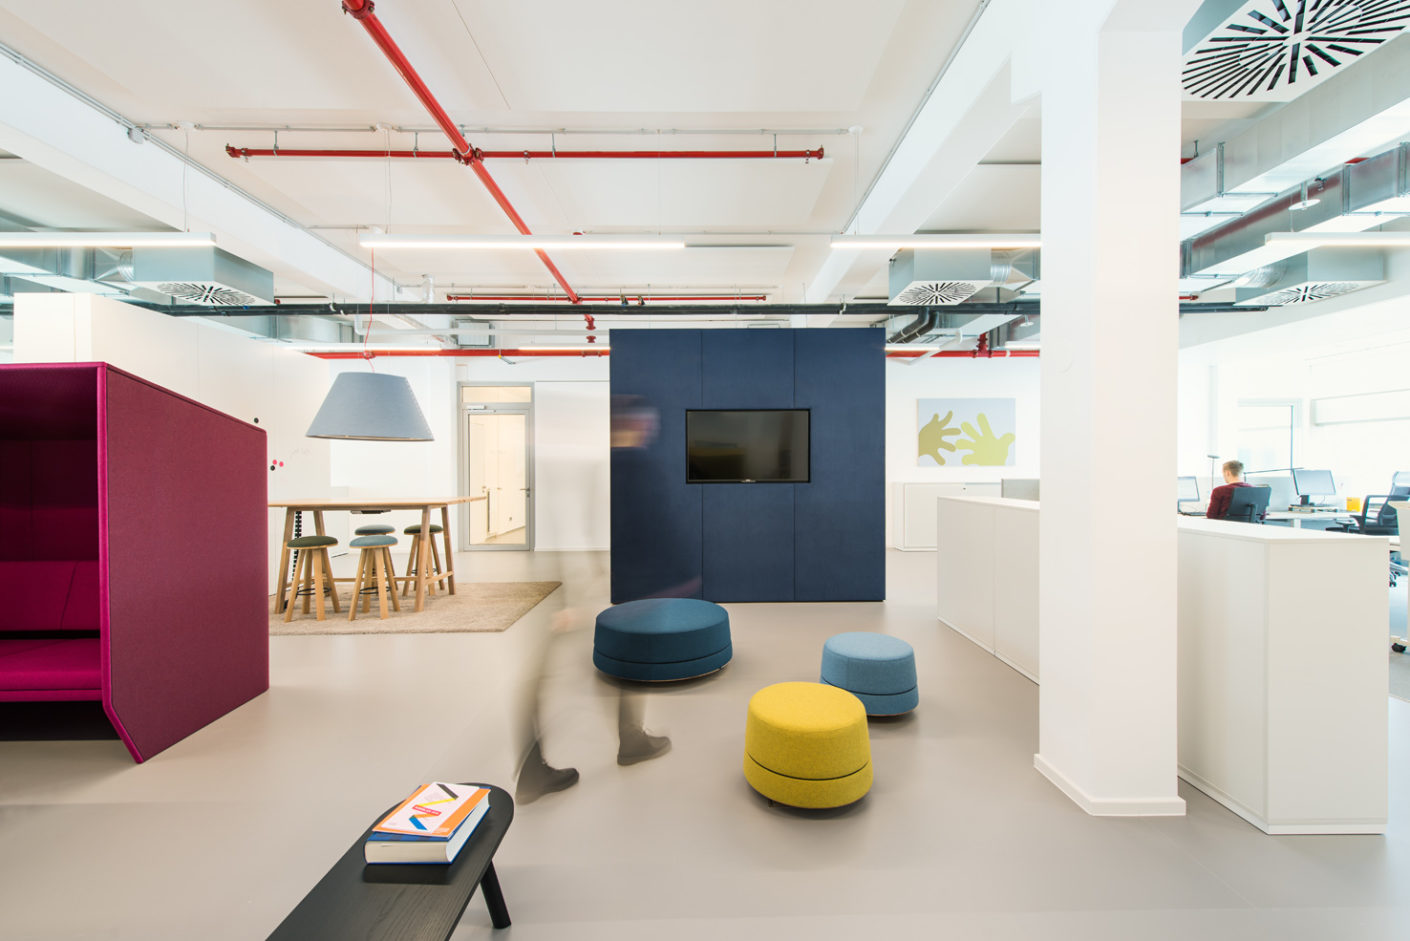 Sam and Planktons Architects divided into Buzzispace's products into functional areas.